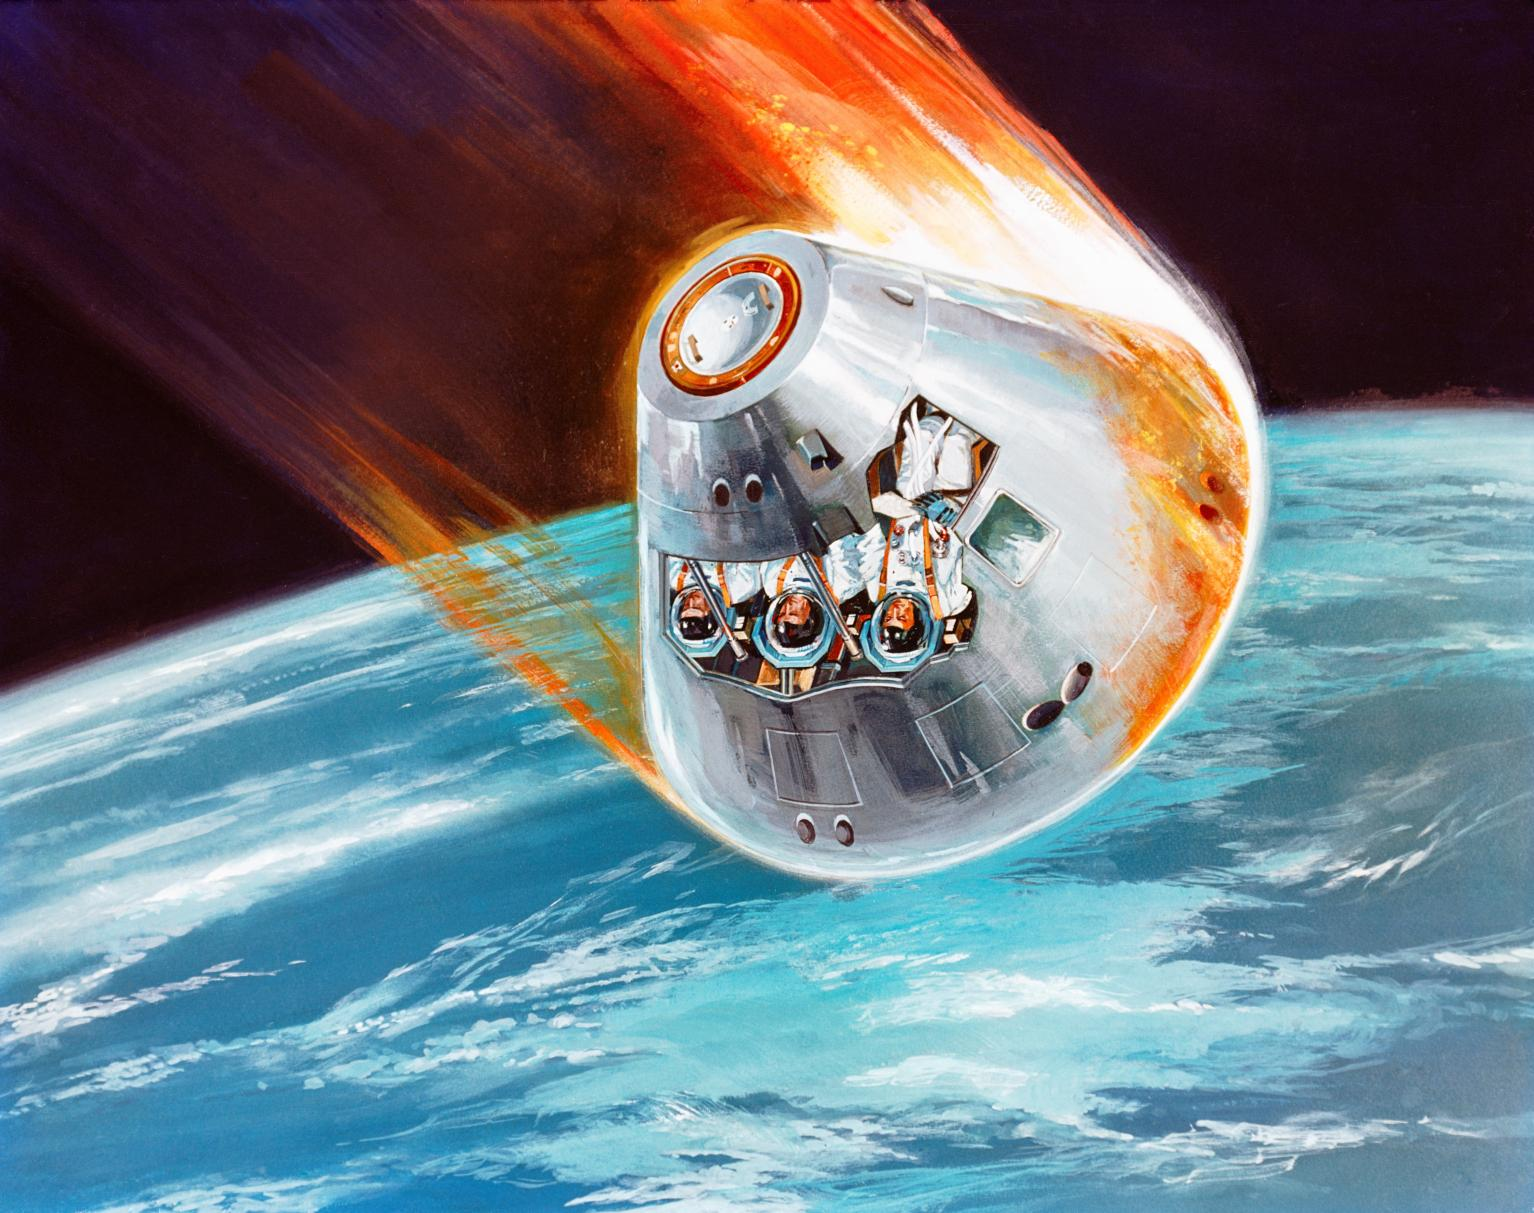 Illustration of Apollo Spacecraft Reentry